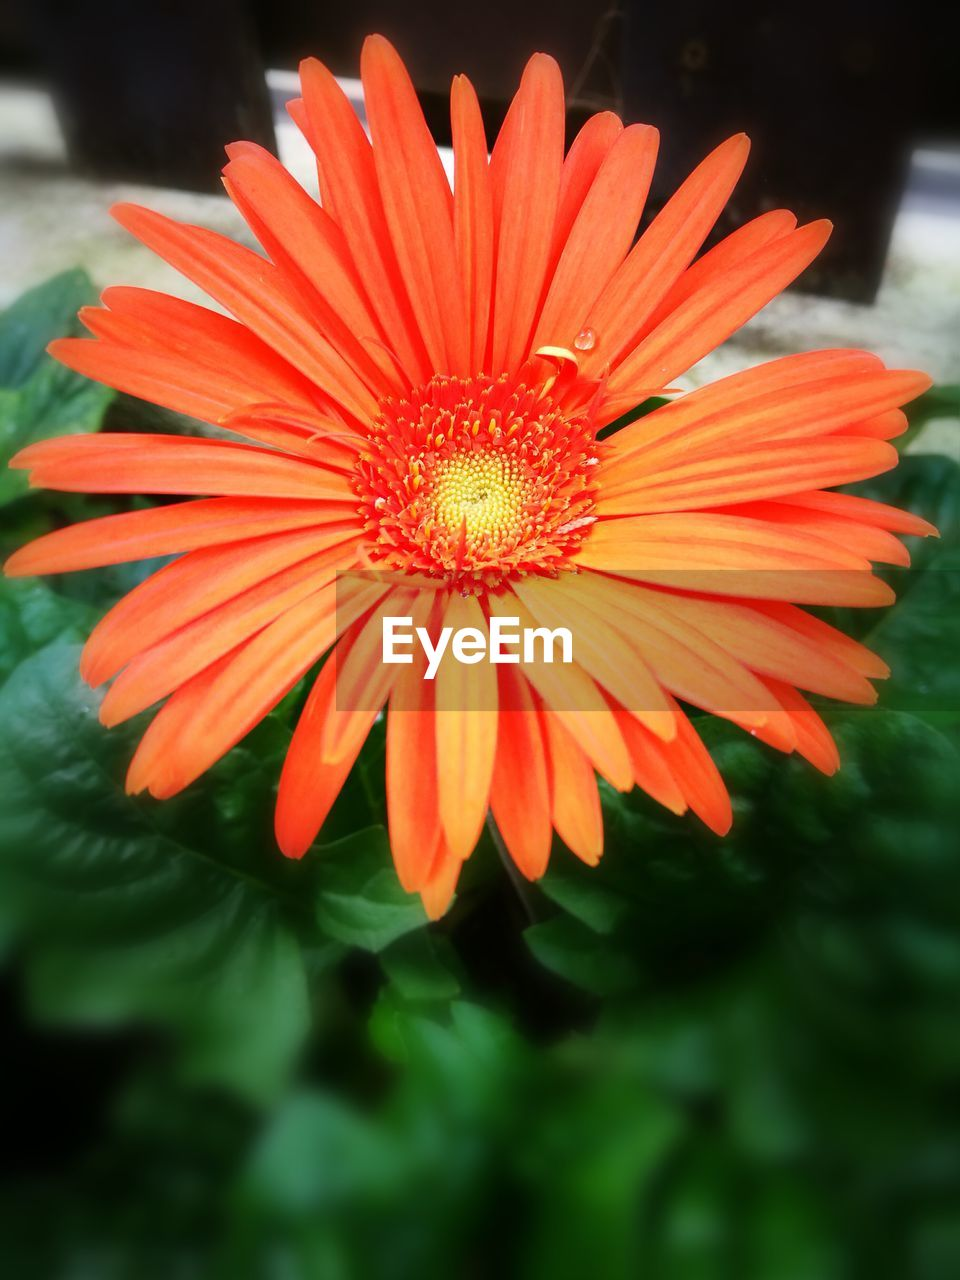 flower, petal, fragility, beauty in nature, flower head, nature, freshness, growth, plant, orange color, close-up, pollen, blooming, no people, day, outdoors